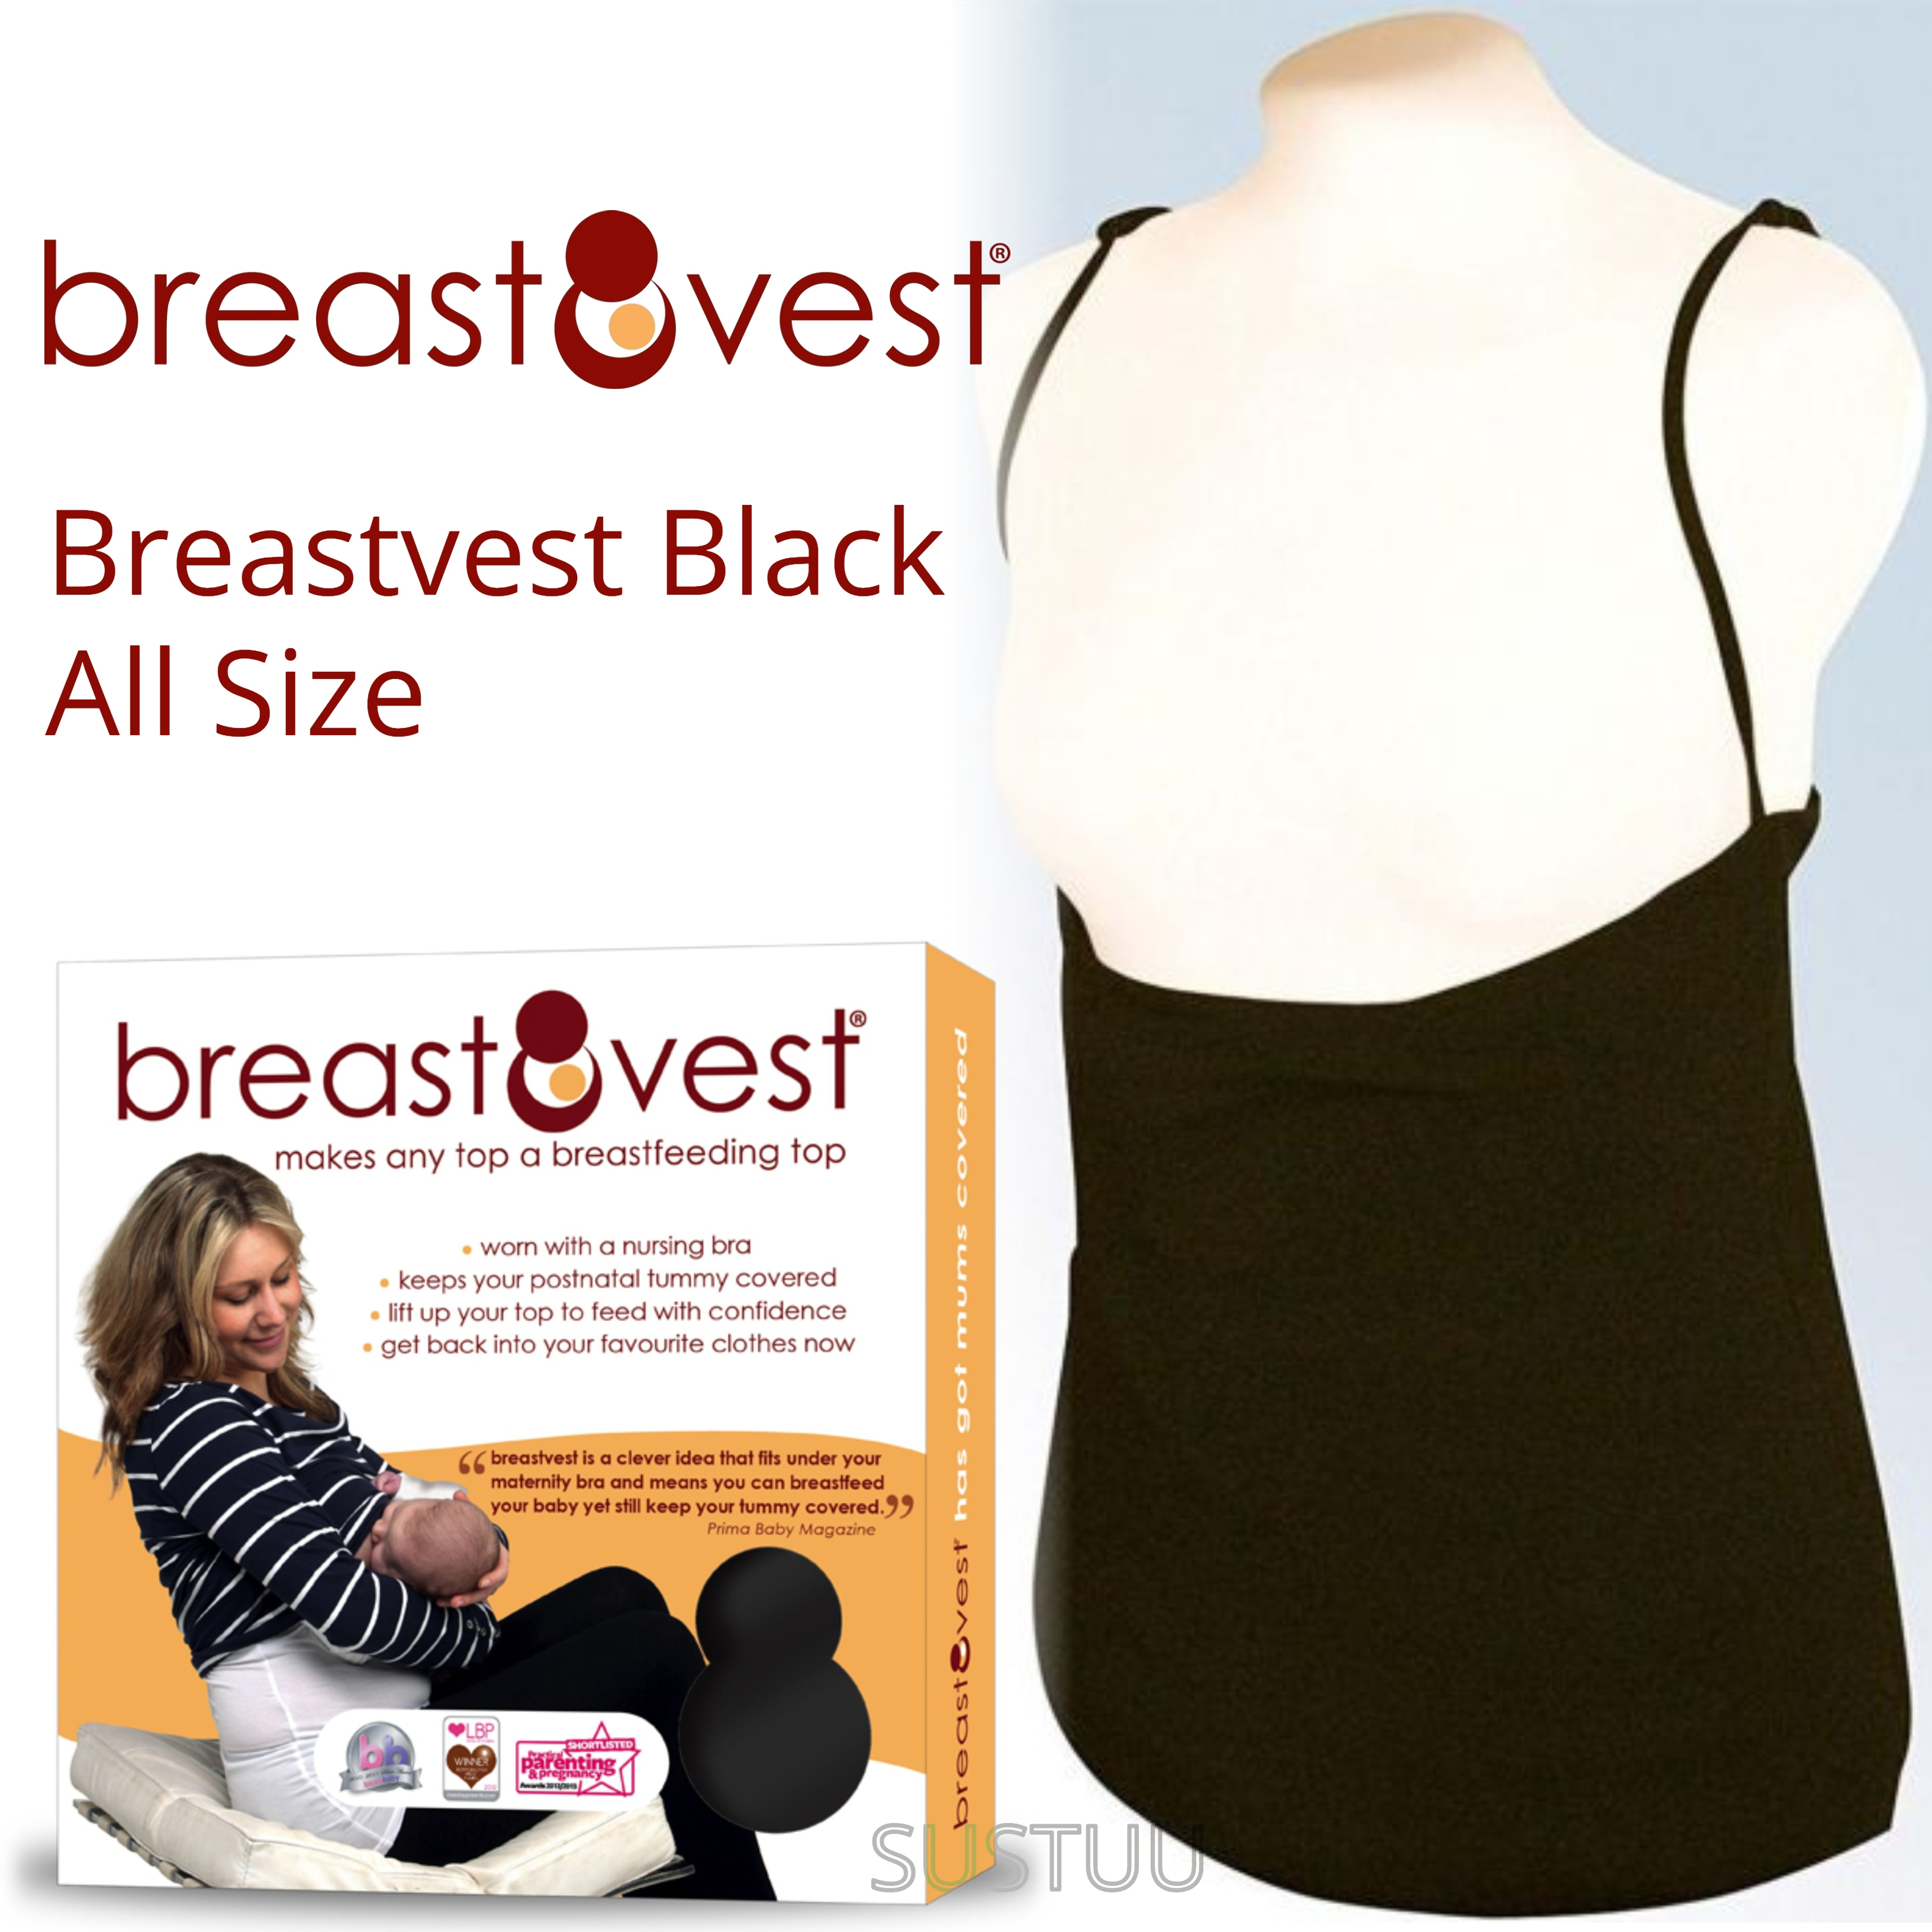 Breastvest Nursing Top Black|Maternity Clothing for Mum|Pregnancy Use|Small